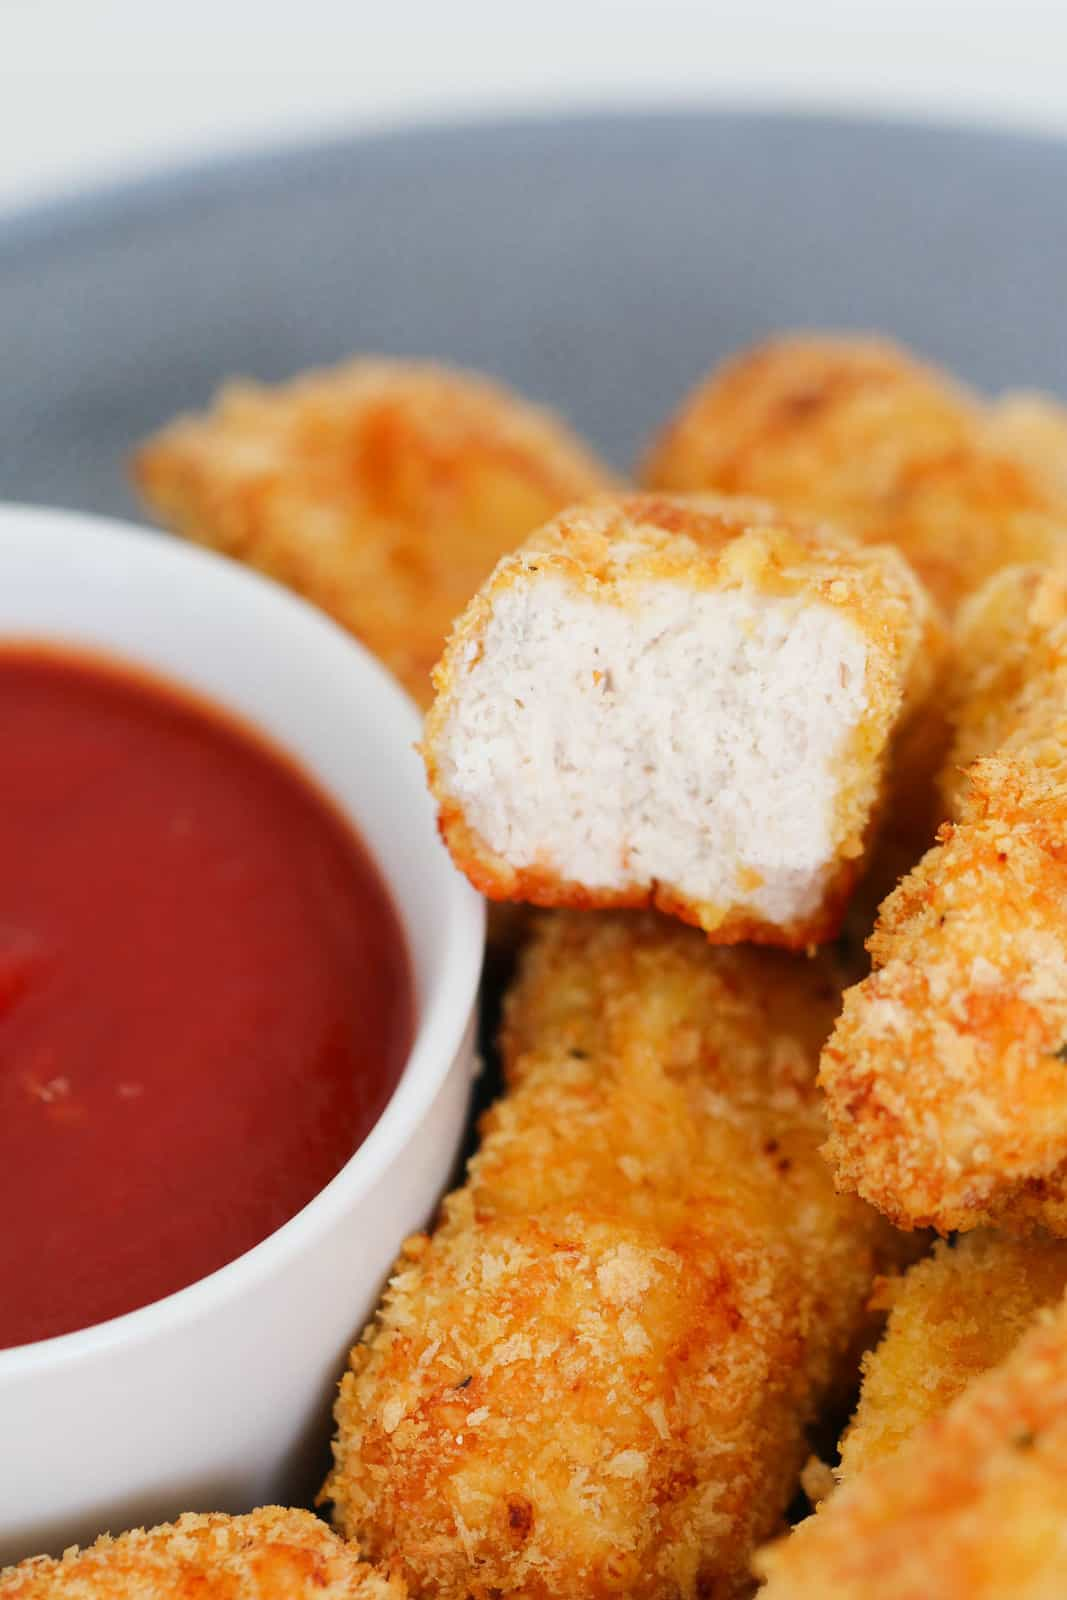 A half-eaten homemade chicken nugget with a bowl of red sauce.